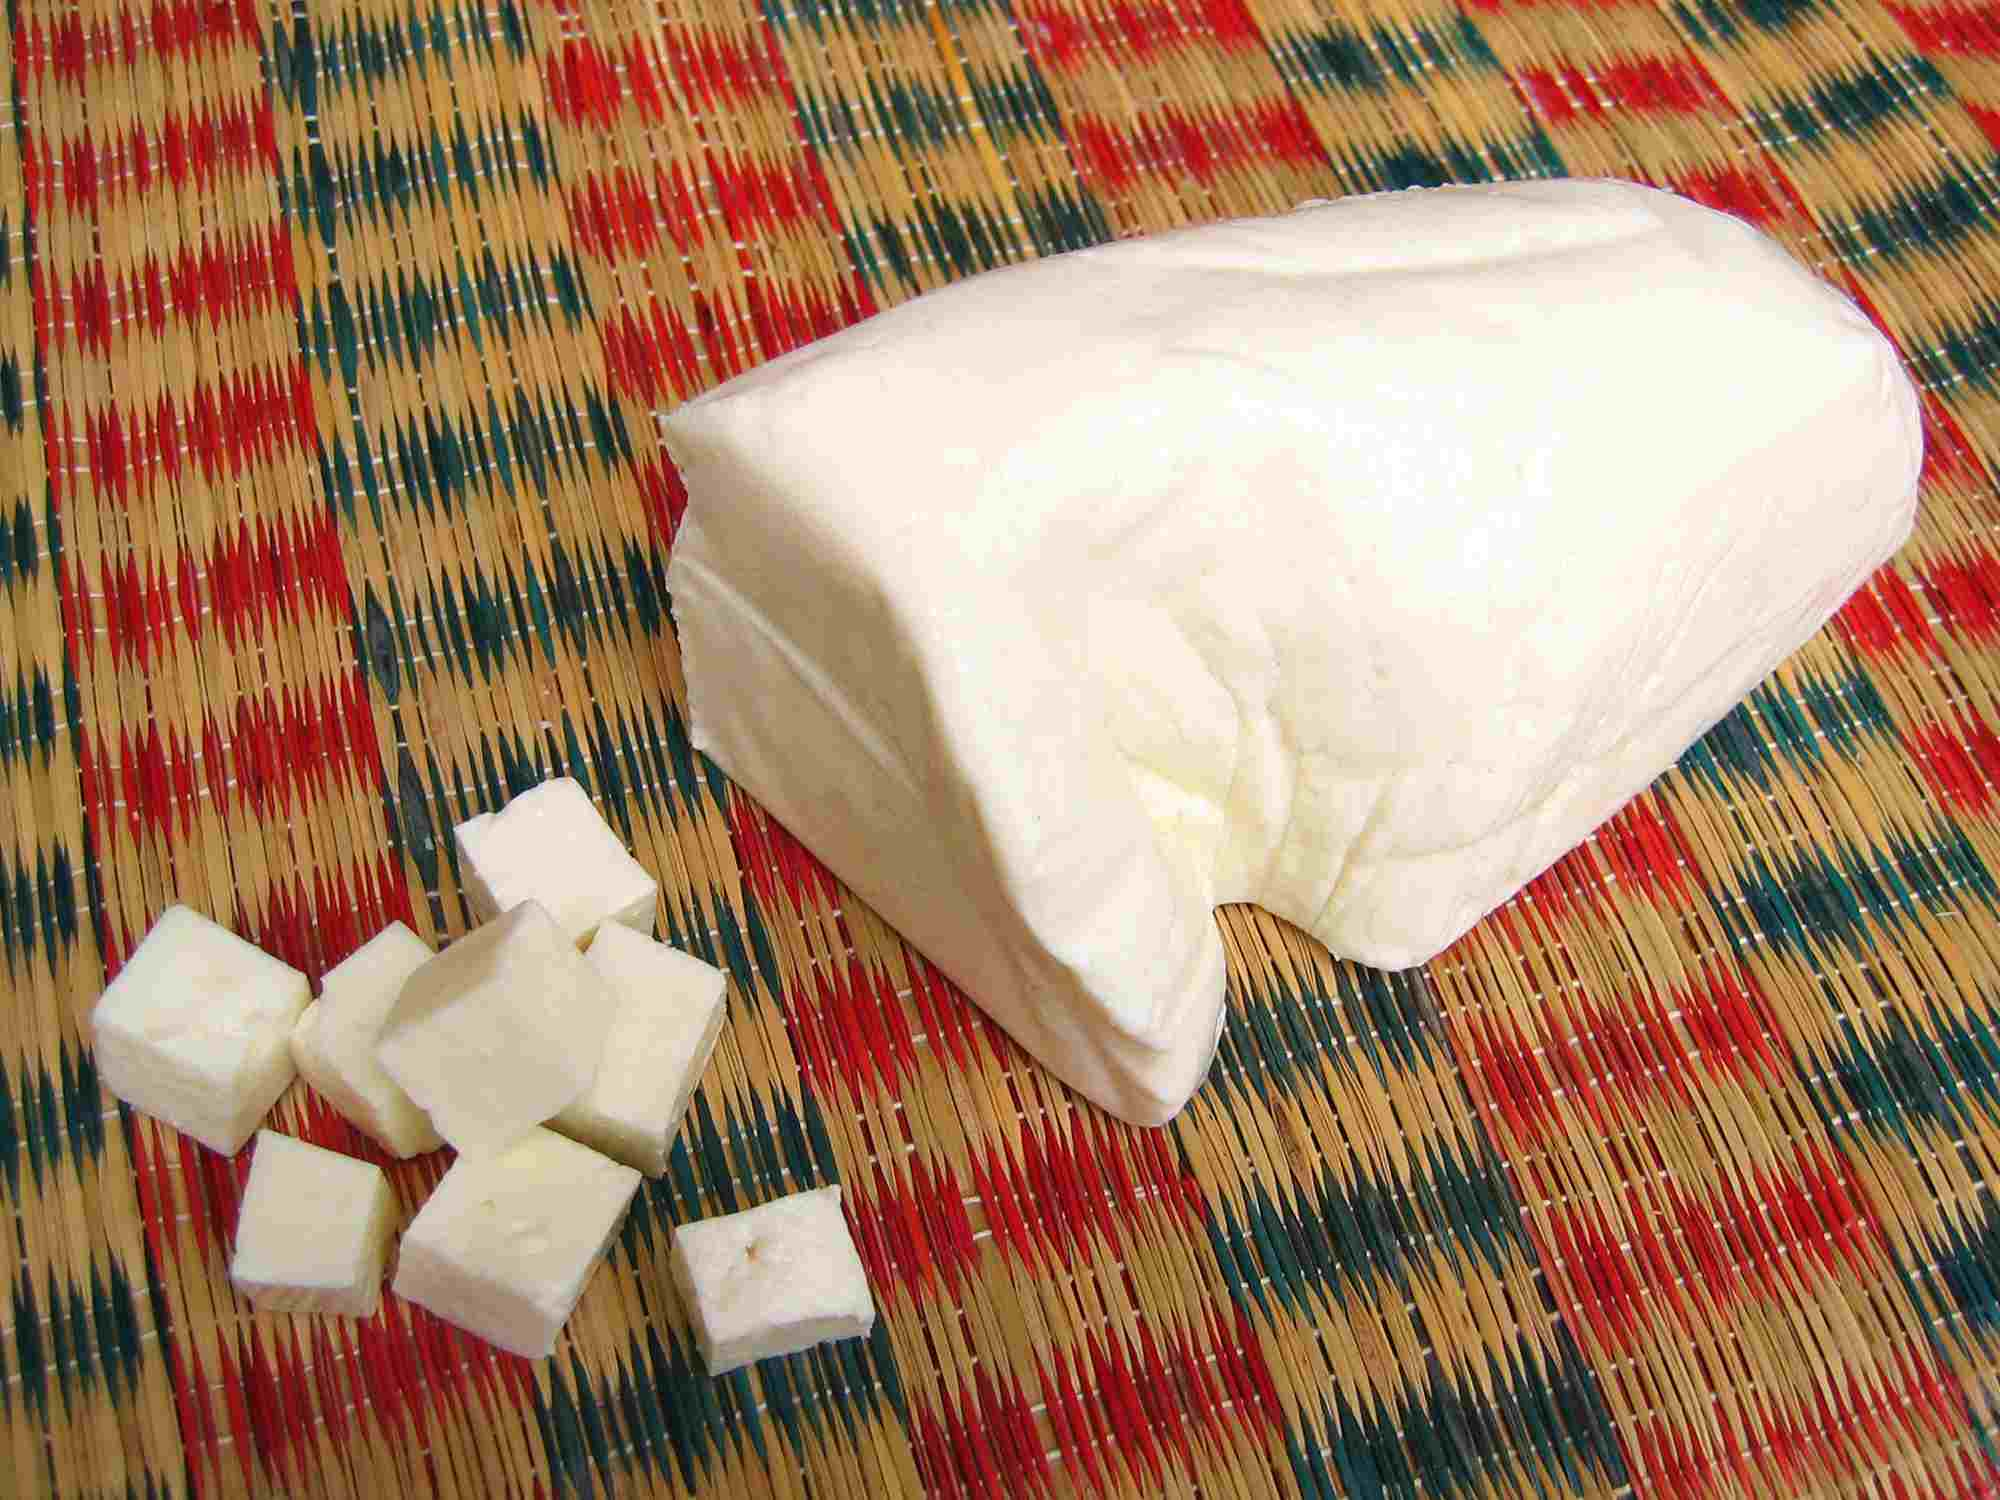 How to Make Your Own Paneer (Indian Cottage Cheese)